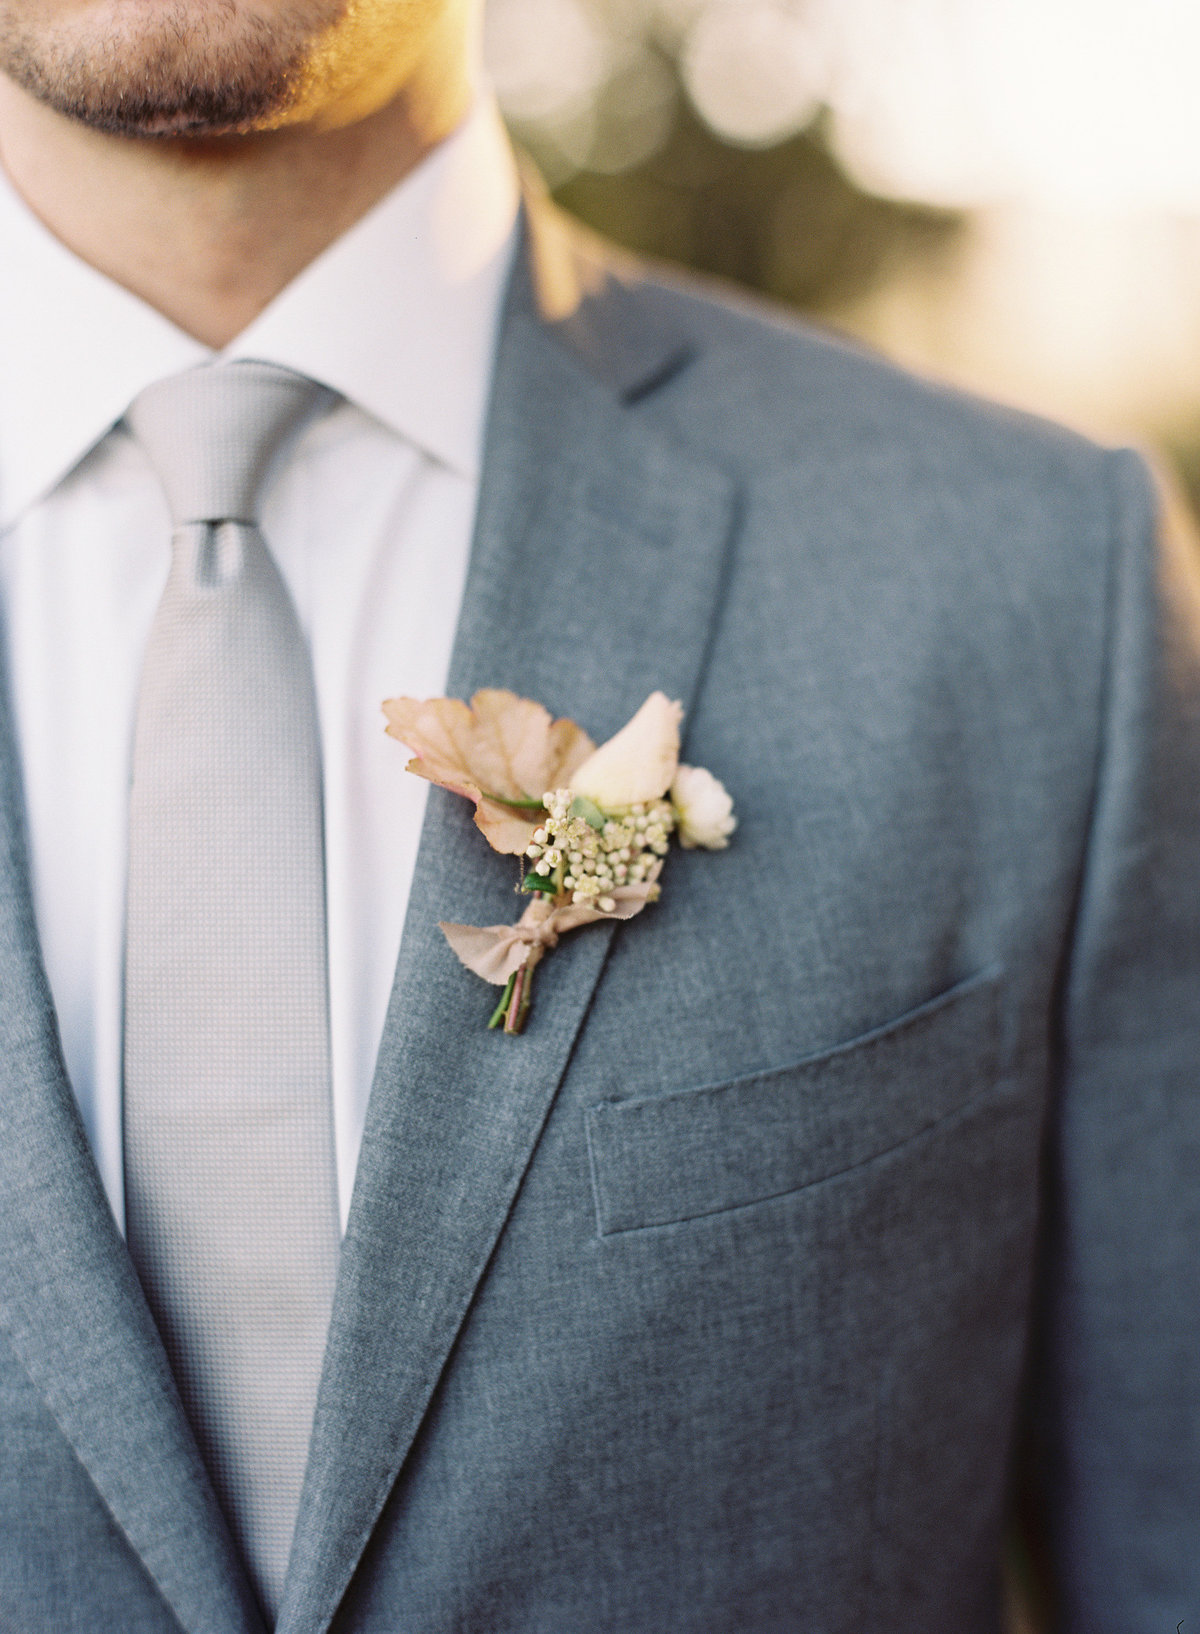 Boutonniere for wedding by Jenny Schneider Events in Napa Valley, California. Photo by Eric Kelley Photography.